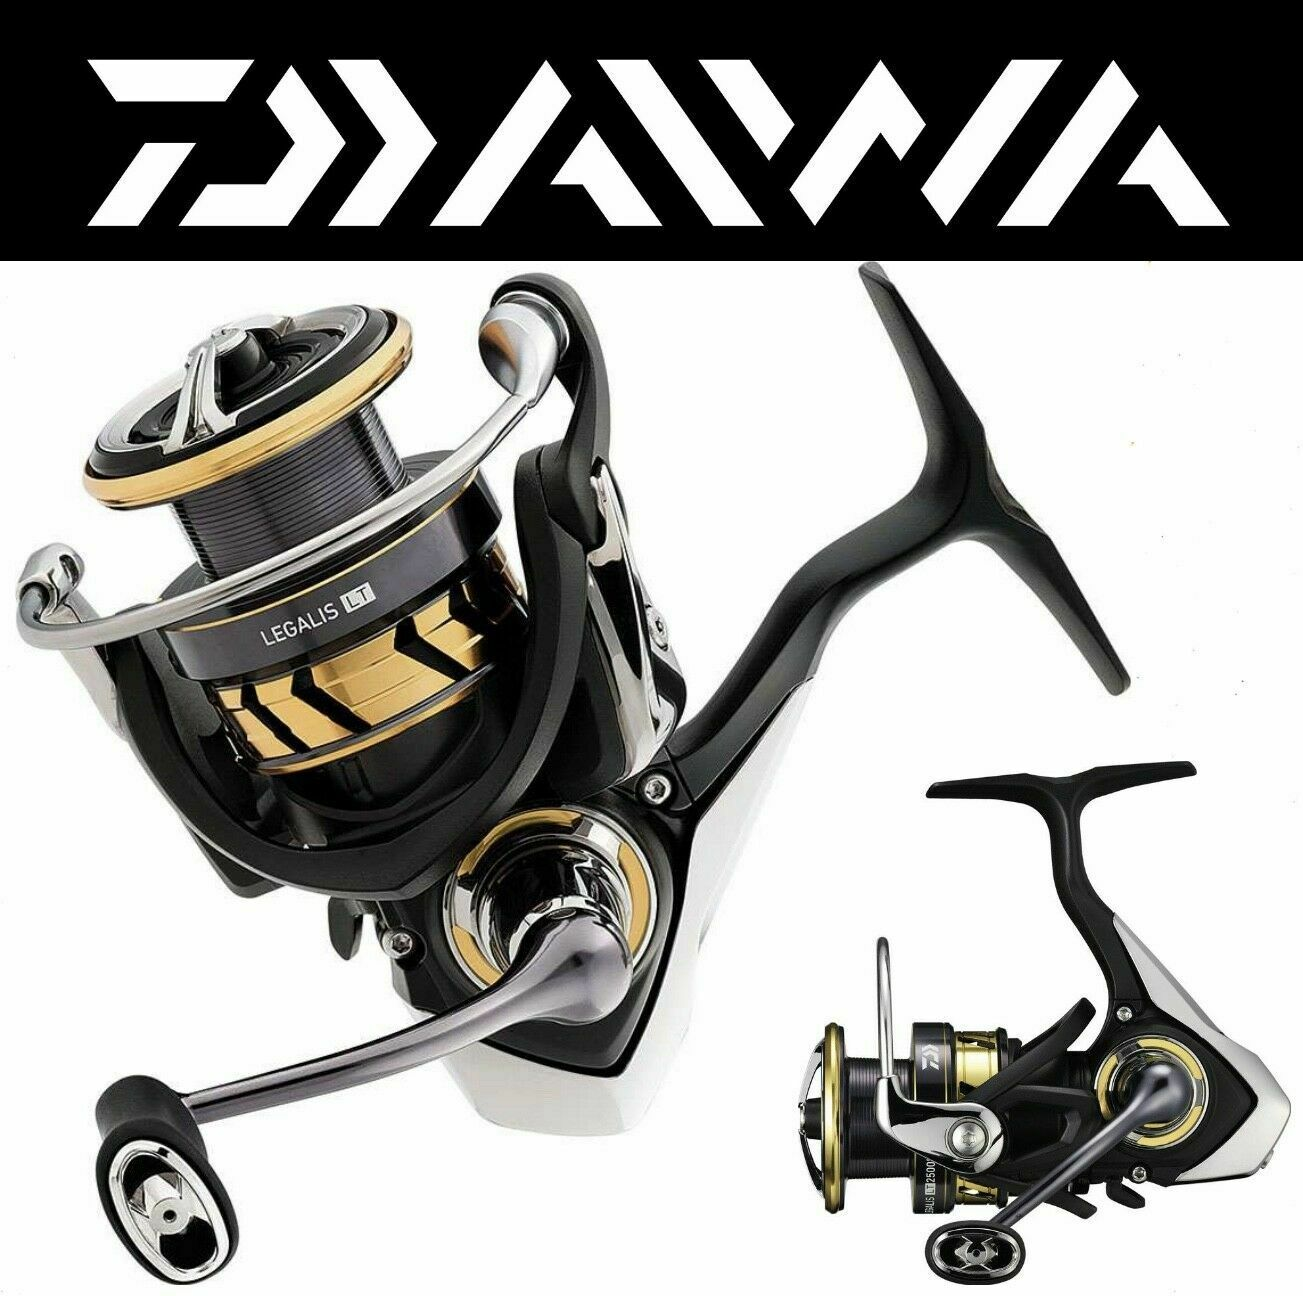 DAIWA LIGHT & TOUGH CONCEPT  SPINNING REEL LEGALIS LT  discount promotions